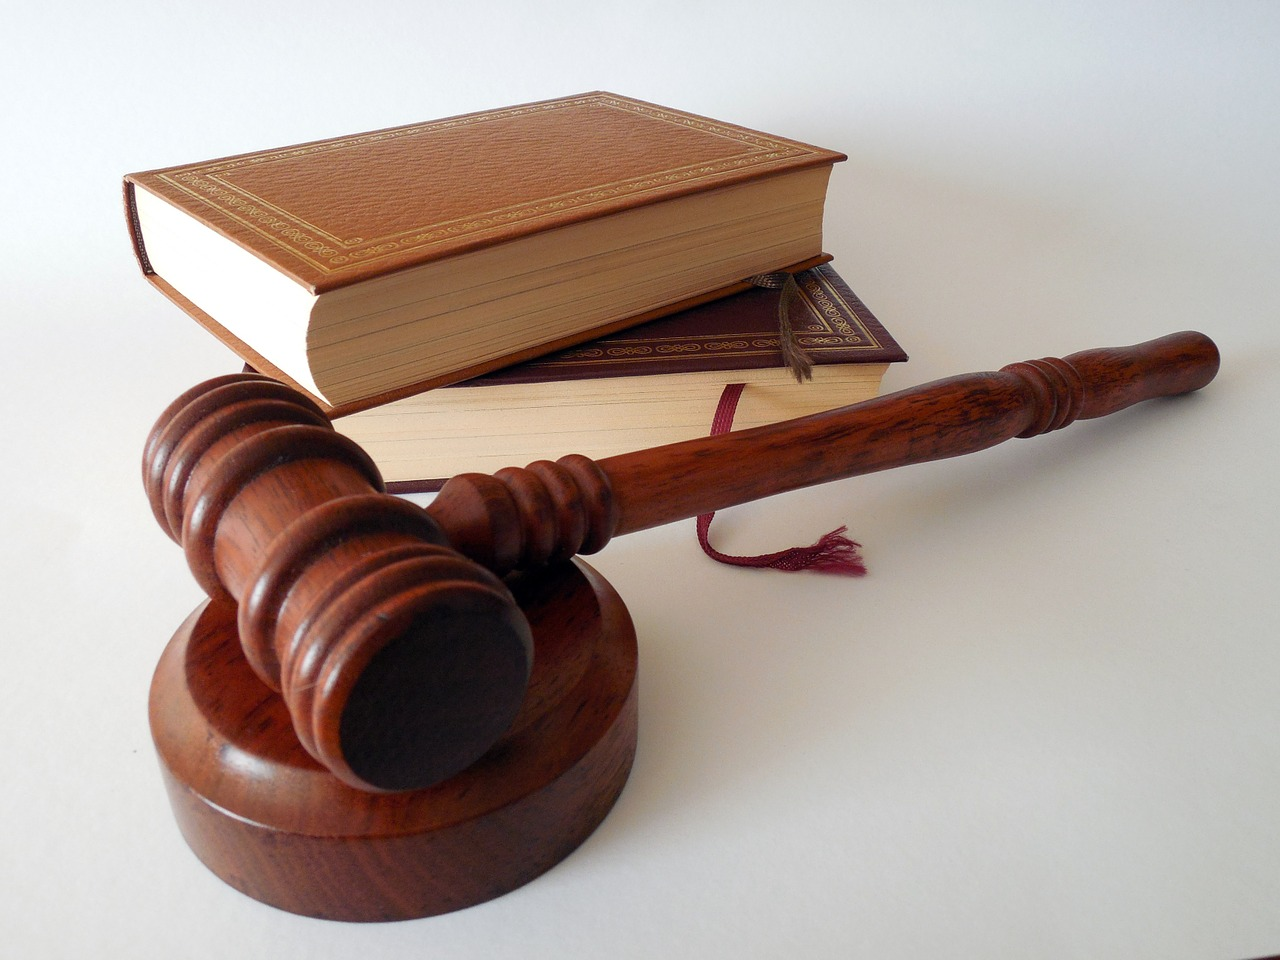 gavel; lawsuits and liability